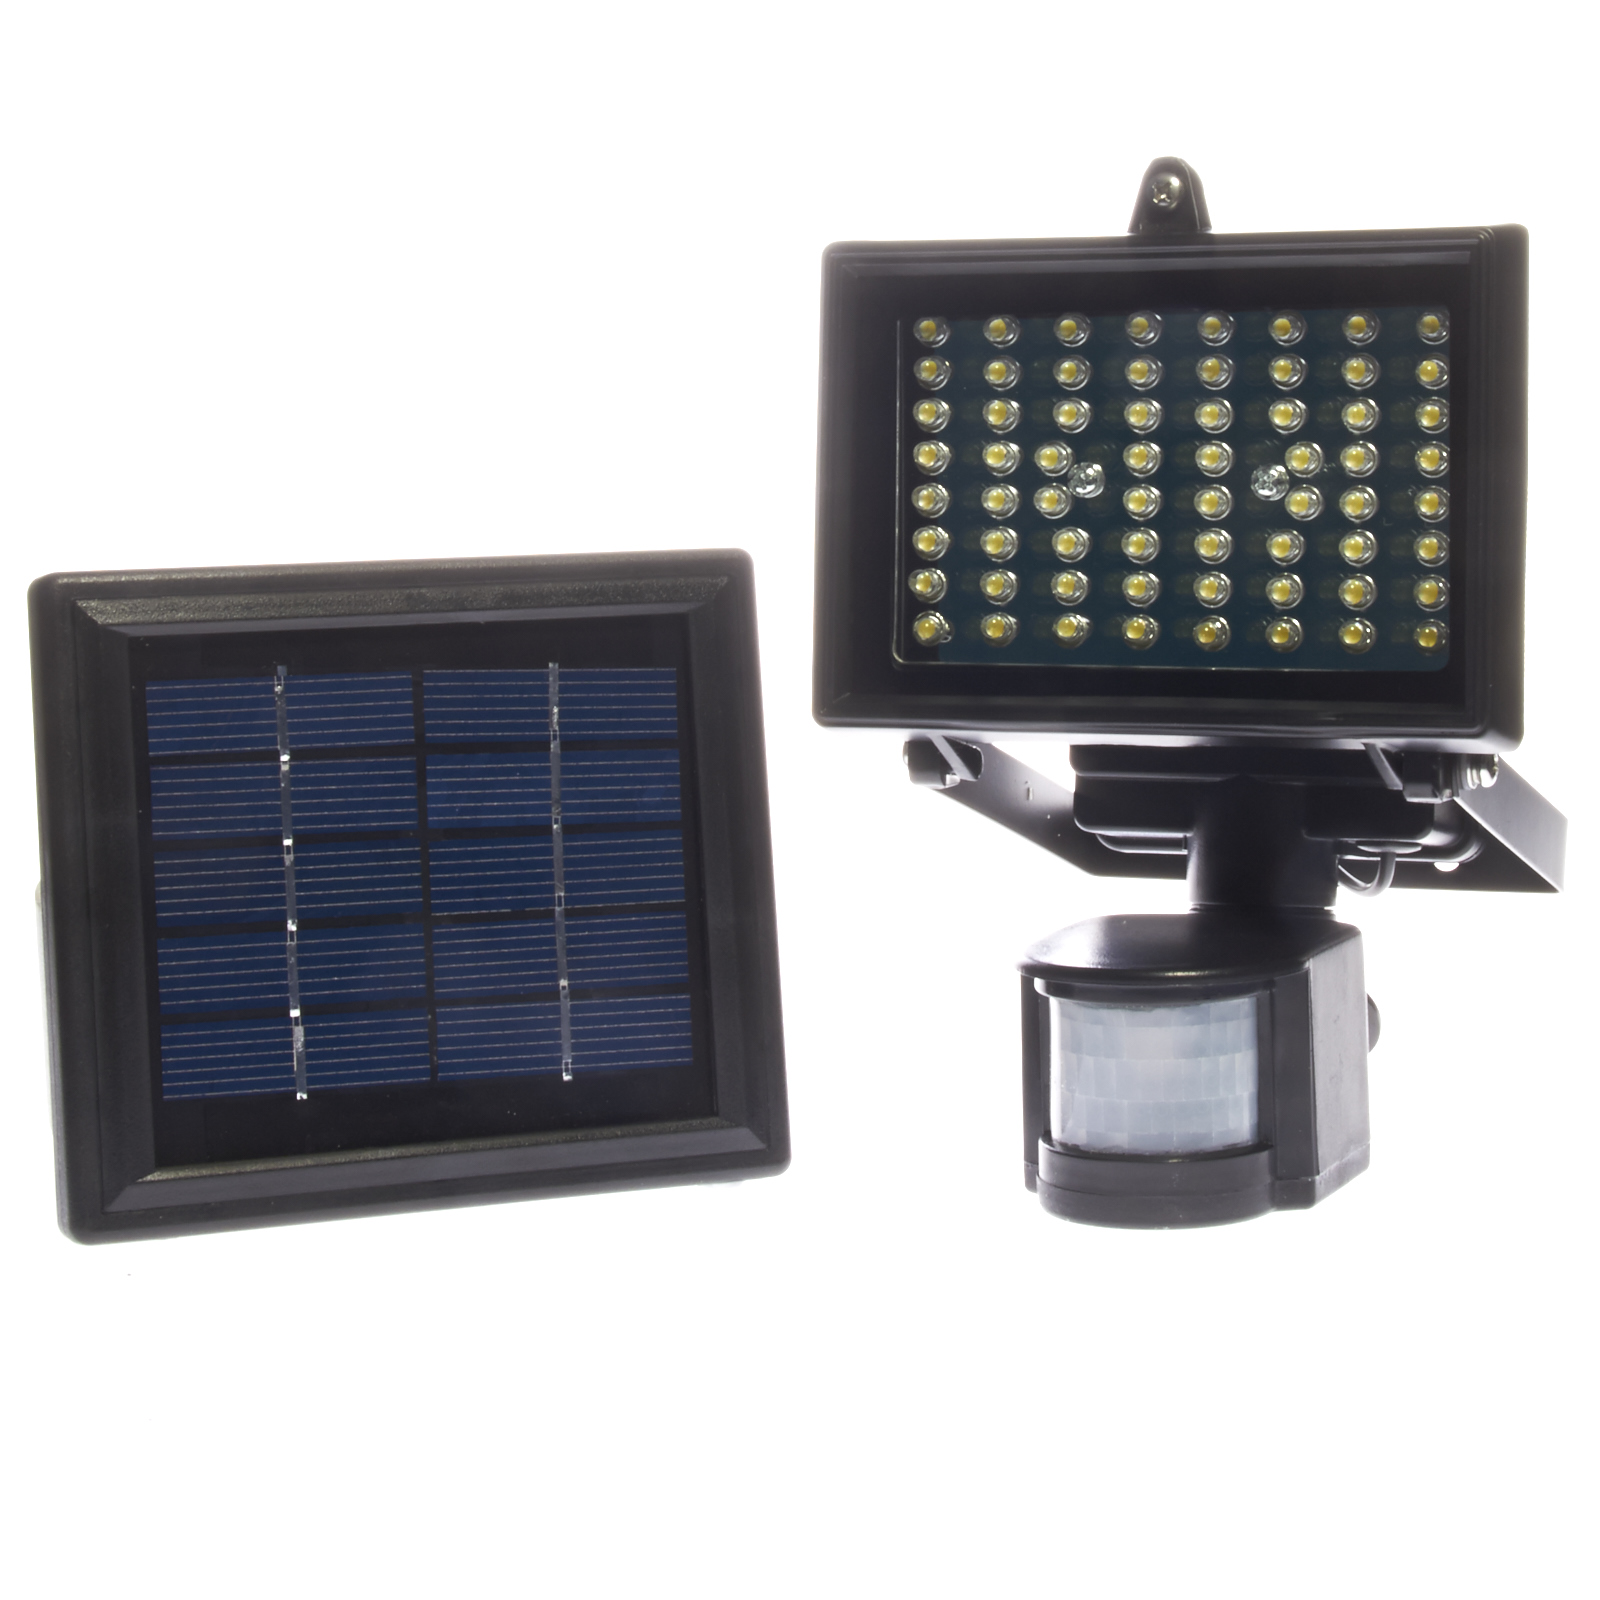 64 led solar powered outdoor digital pir motion sensor. Black Bedroom Furniture Sets. Home Design Ideas